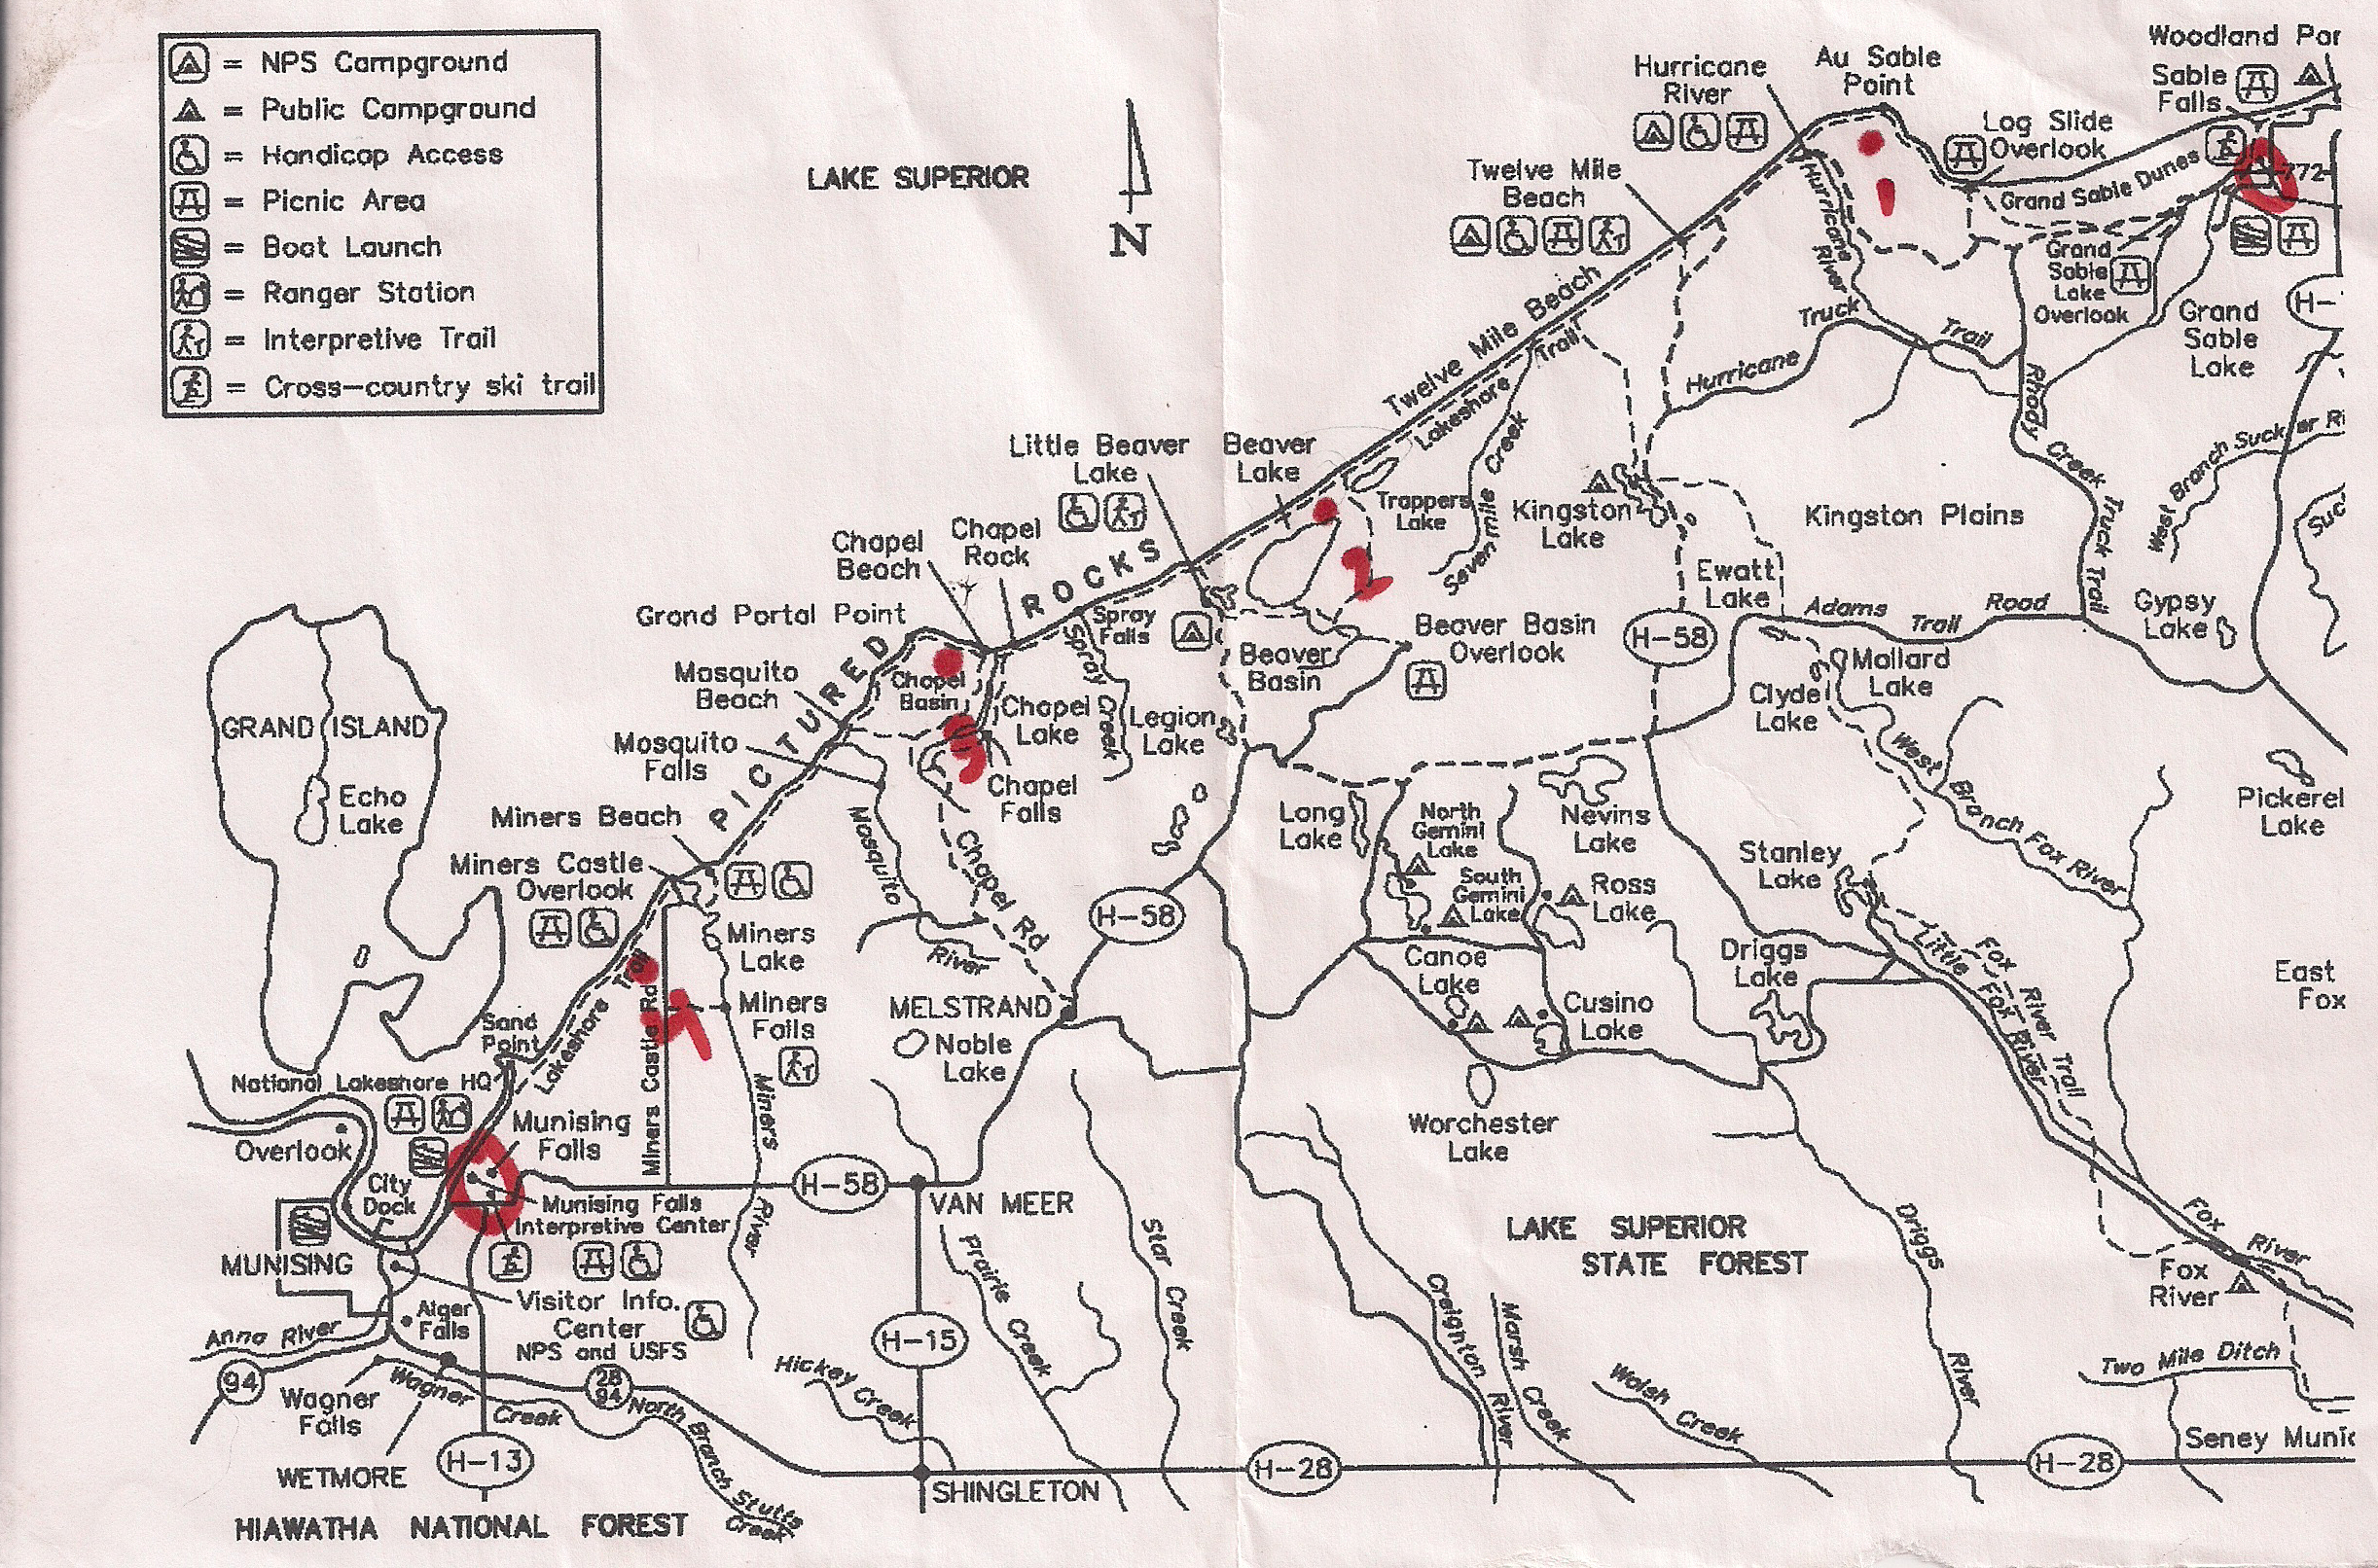 Picture Rocks Michigan Map.Pictured Rocks Trail Map 1 Seeking Lost Hiking Backpacking